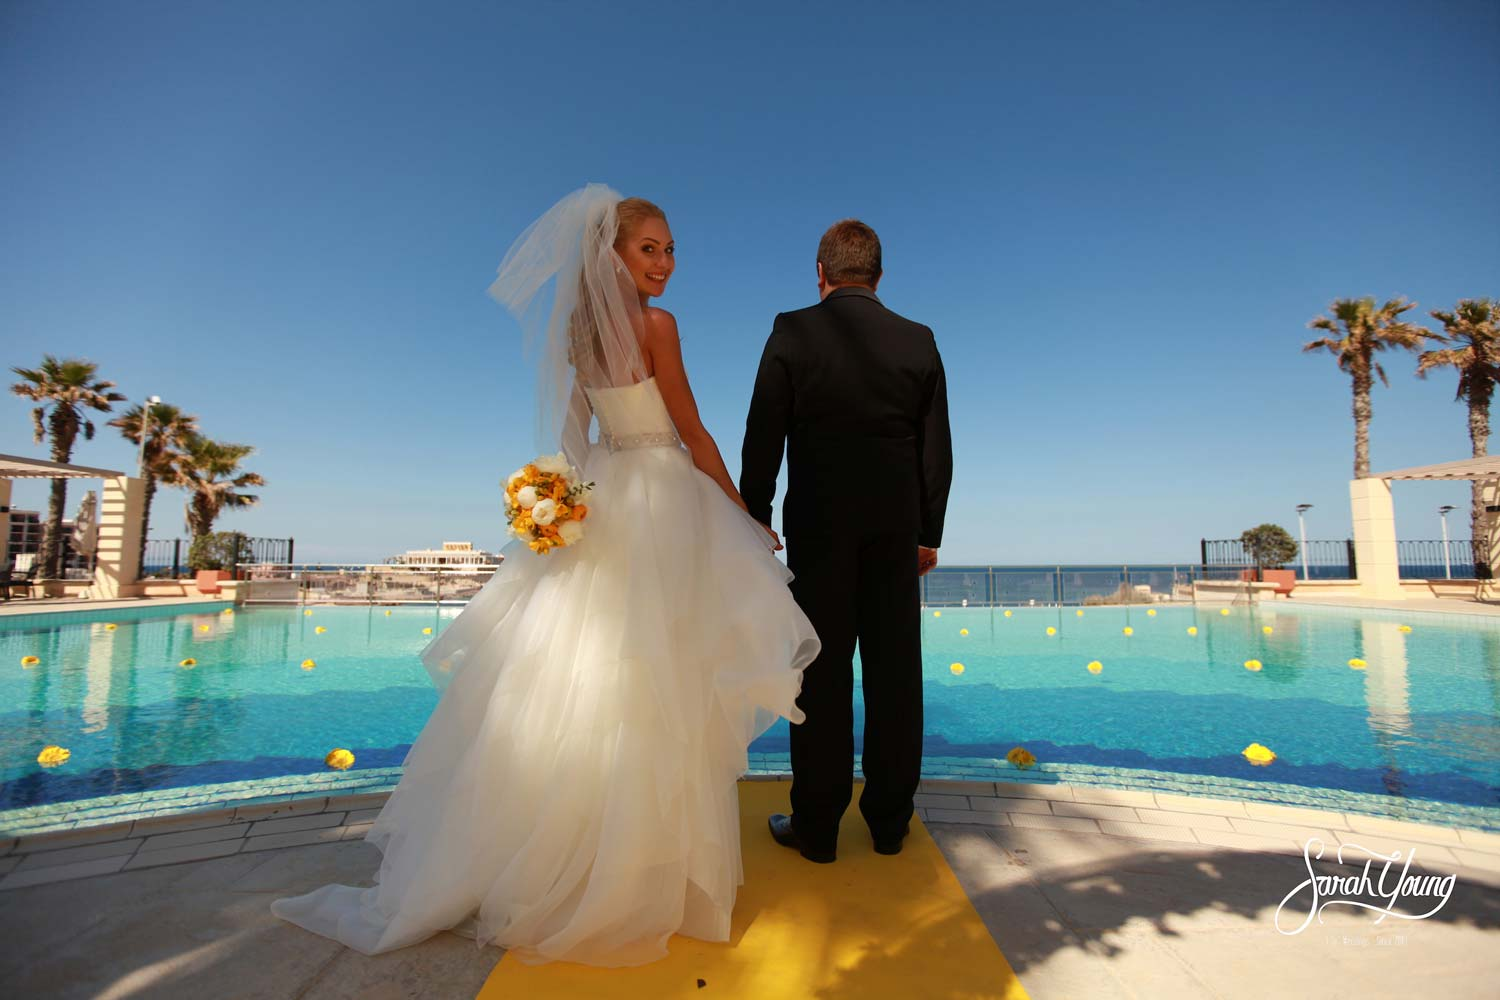 sarah young malta events weddings planned memorable moments mark ve last